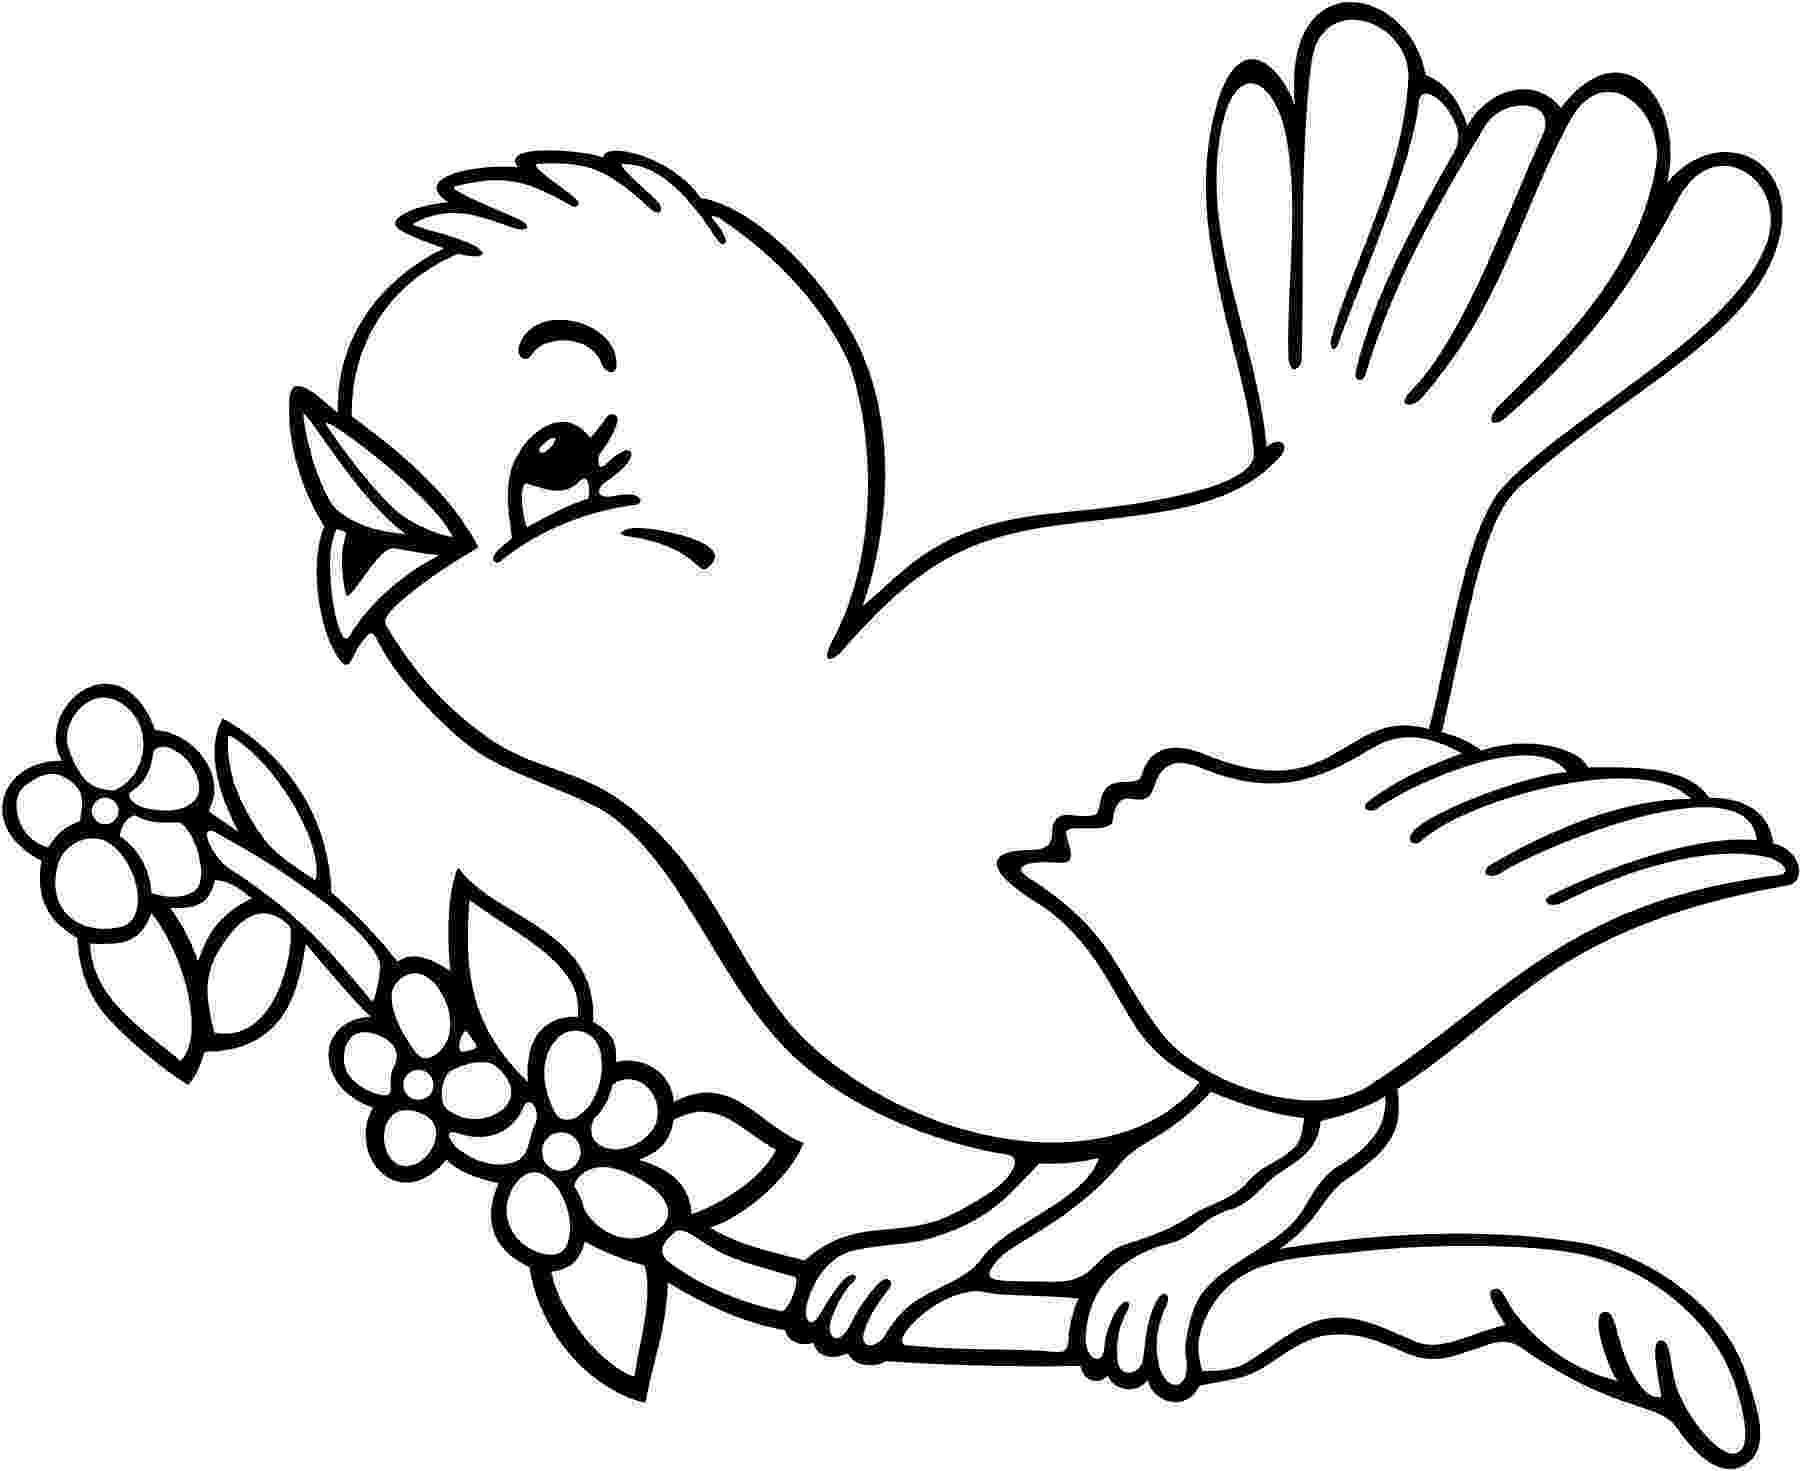 parrot pictures for kids to color bird coloring pages getcoloringpagescom kids pictures to for parrot color